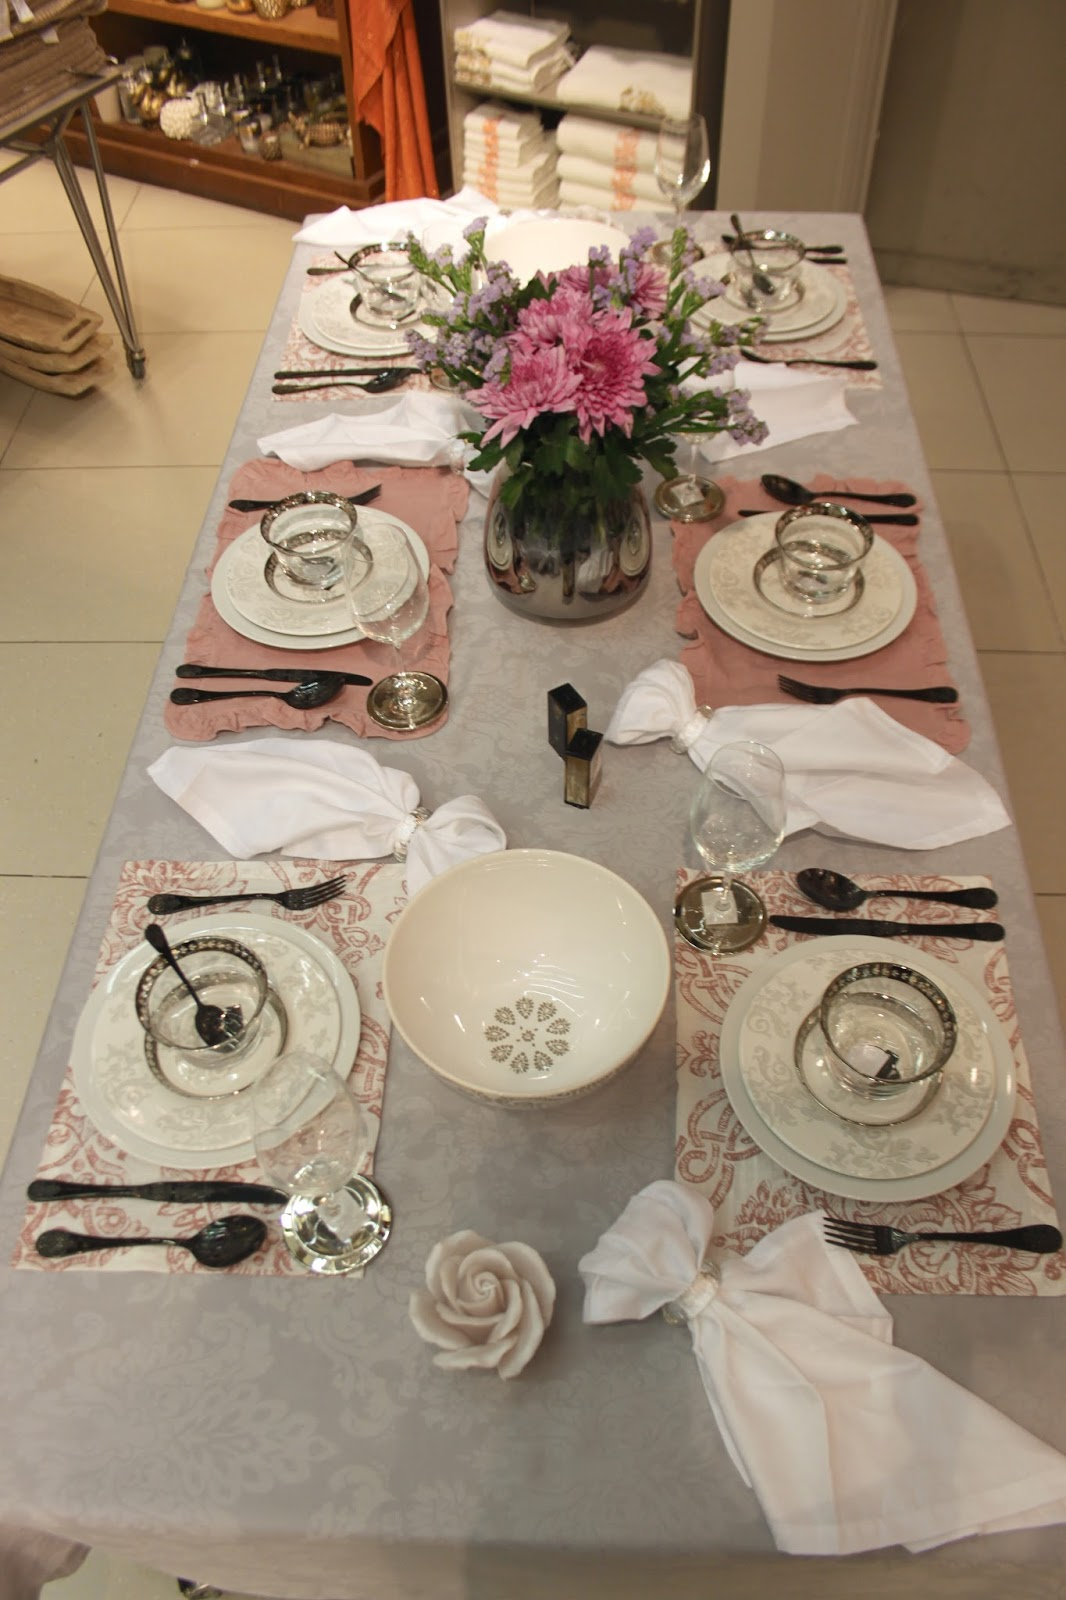 The Table Arrangements Are To Help You Mix And Match Products Decorate Setup Your This Ramadan For Iftar Or So Parties Lunch